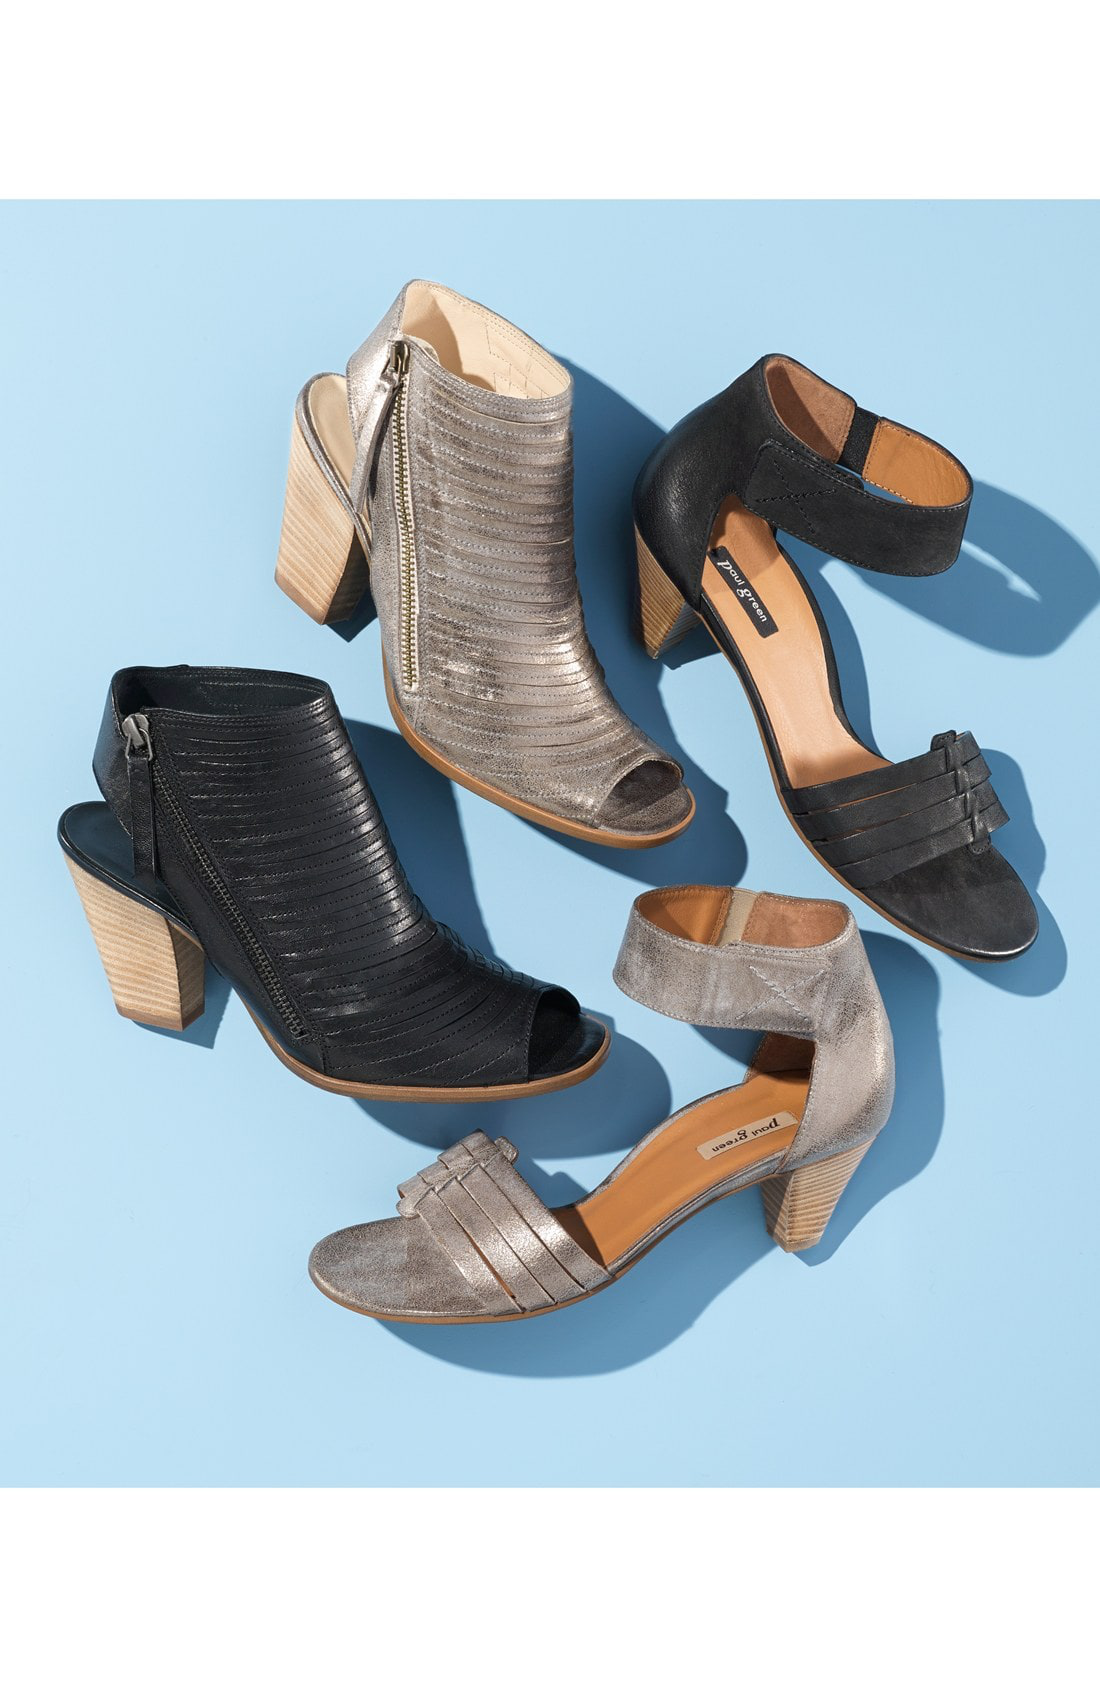 1783d76e2b ... crafted in meticulously stitched leather and styled with a  leg-lengthening peep toe. Style Name  Paul Green  Cayanne  Leather Peep Toe  Sandal (Women).